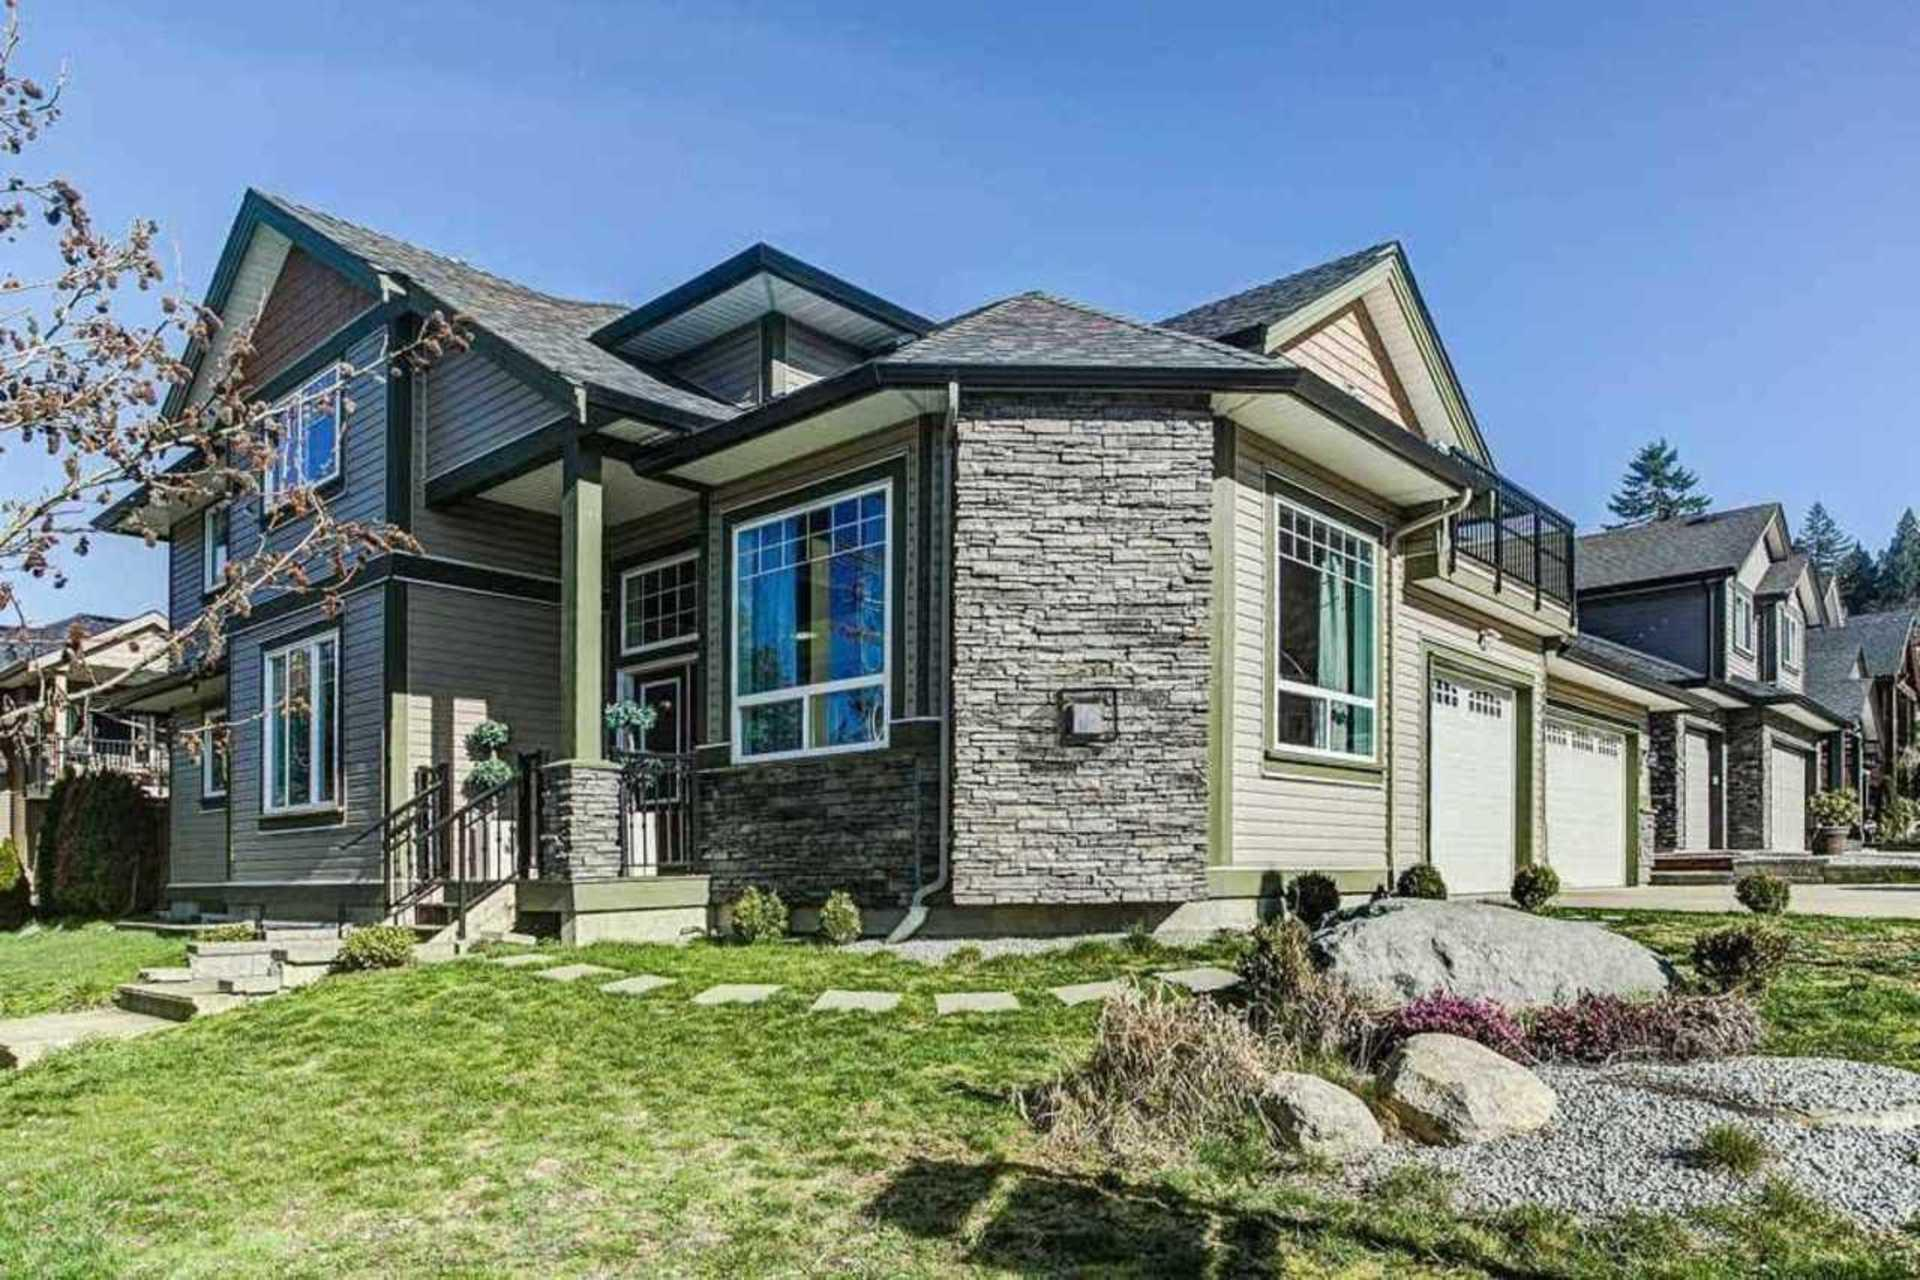 24903 108 Avenue, Thornhill MR, Maple Ridge